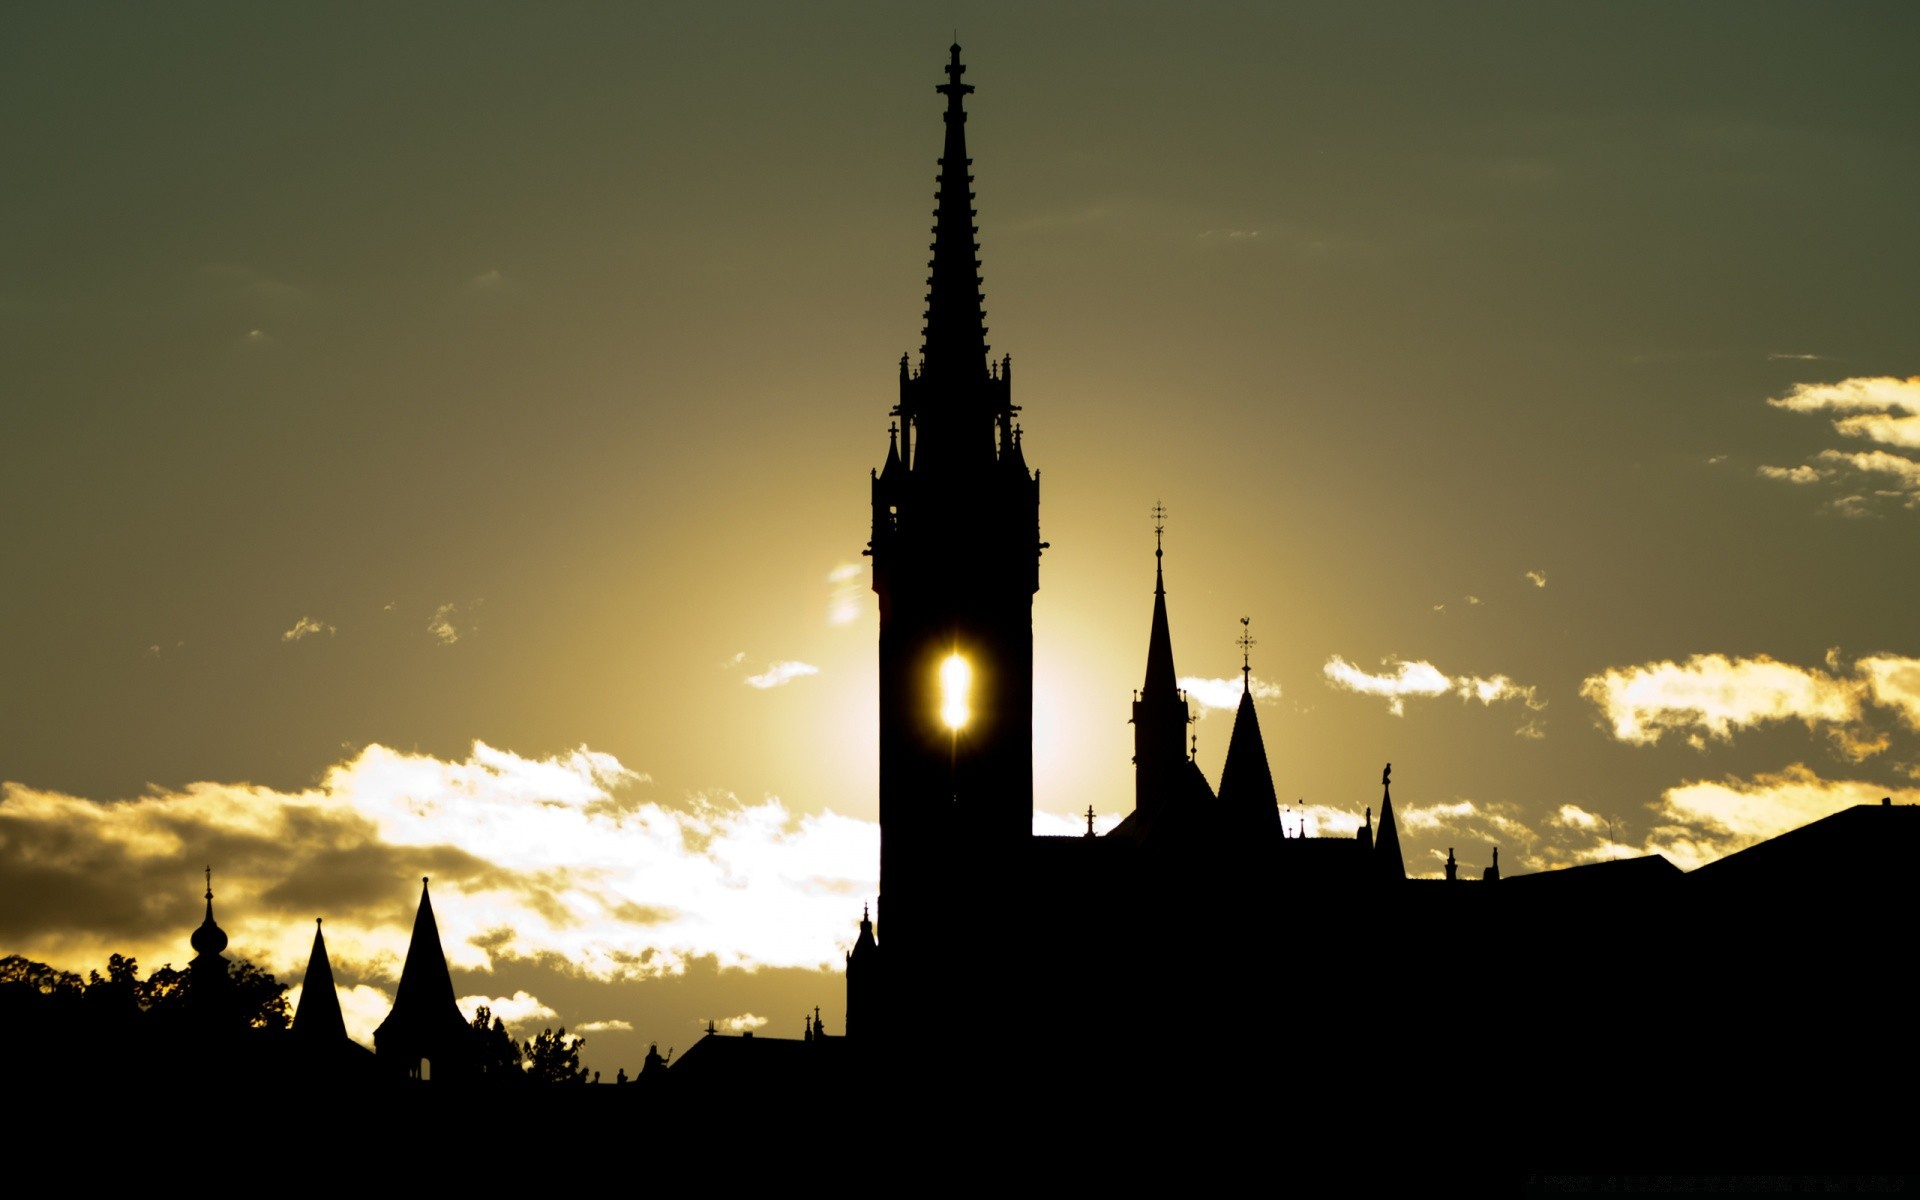 europe architecture sunset travel dusk sky church dawn religion evening city tower outdoors cathedral silhouette